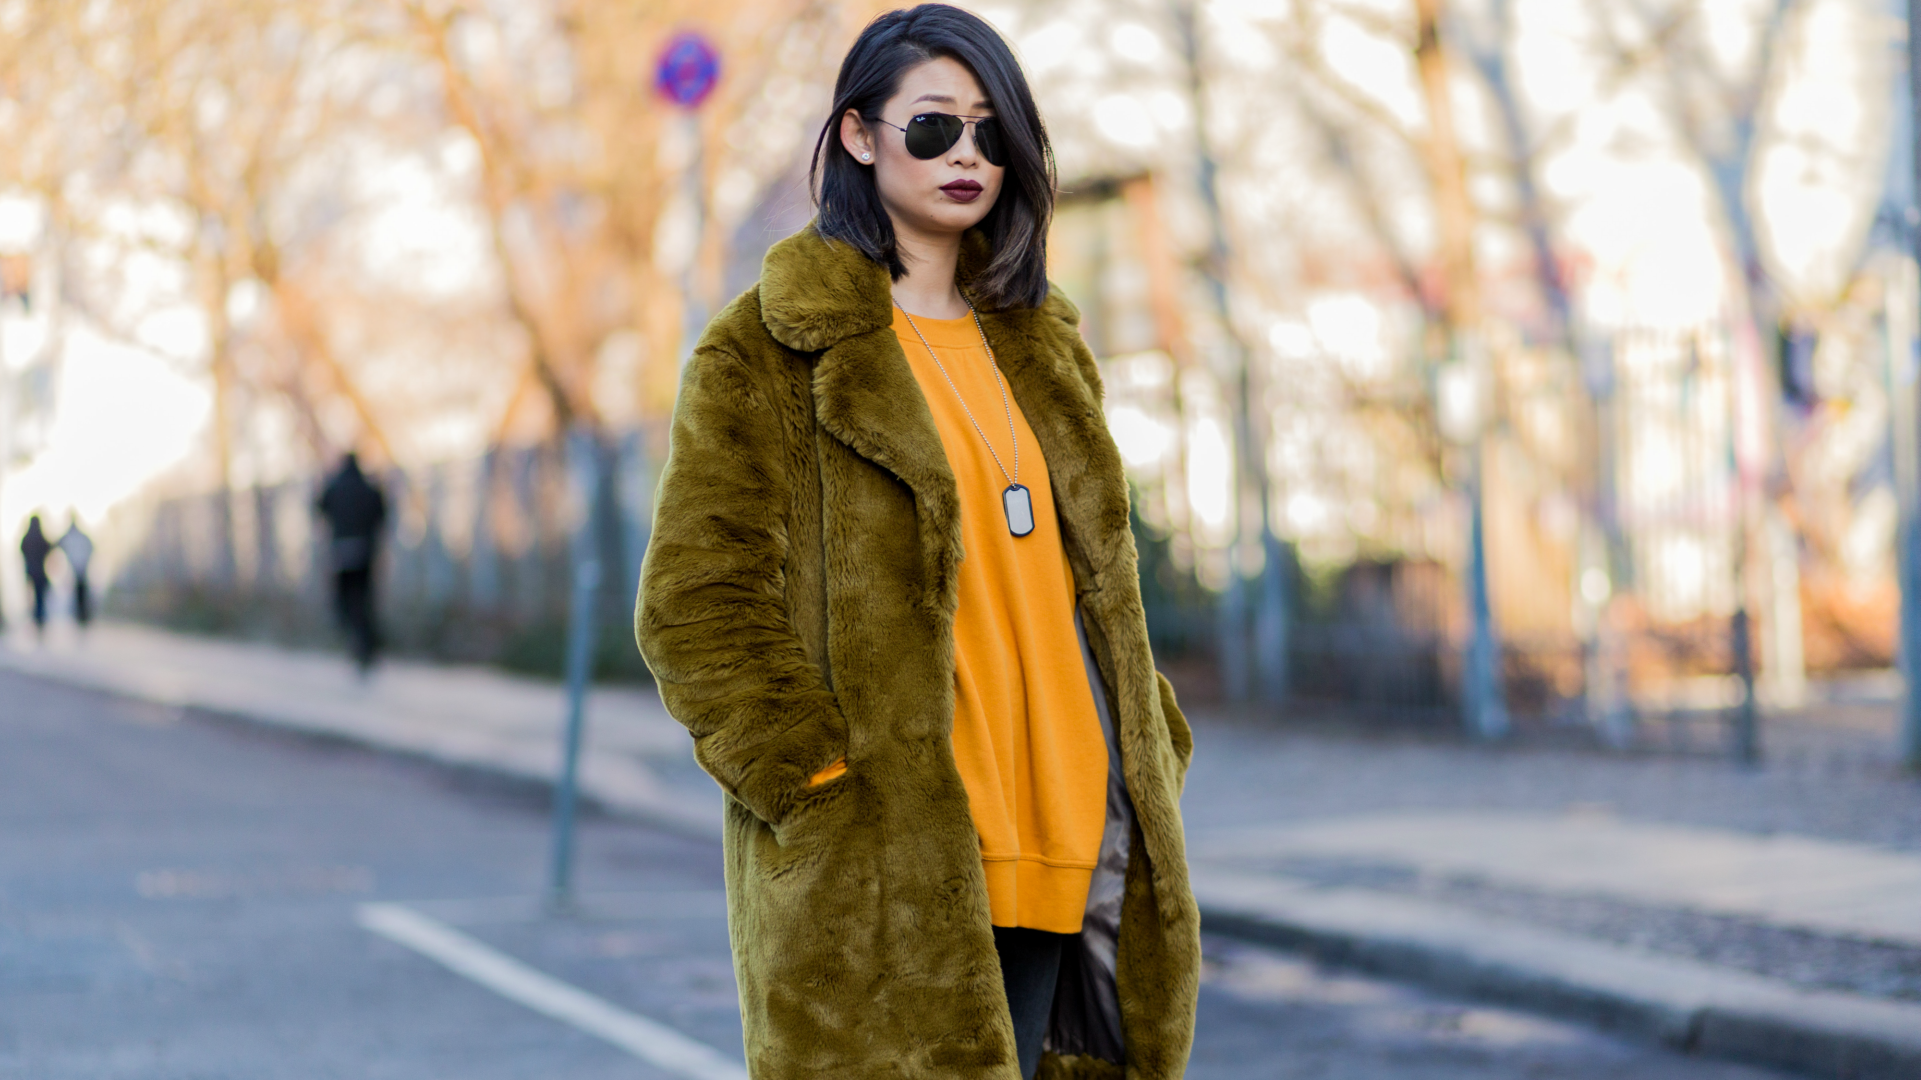 Winter Fashion Inspo: 25 Stylish Cold Weather Outfit Ideas